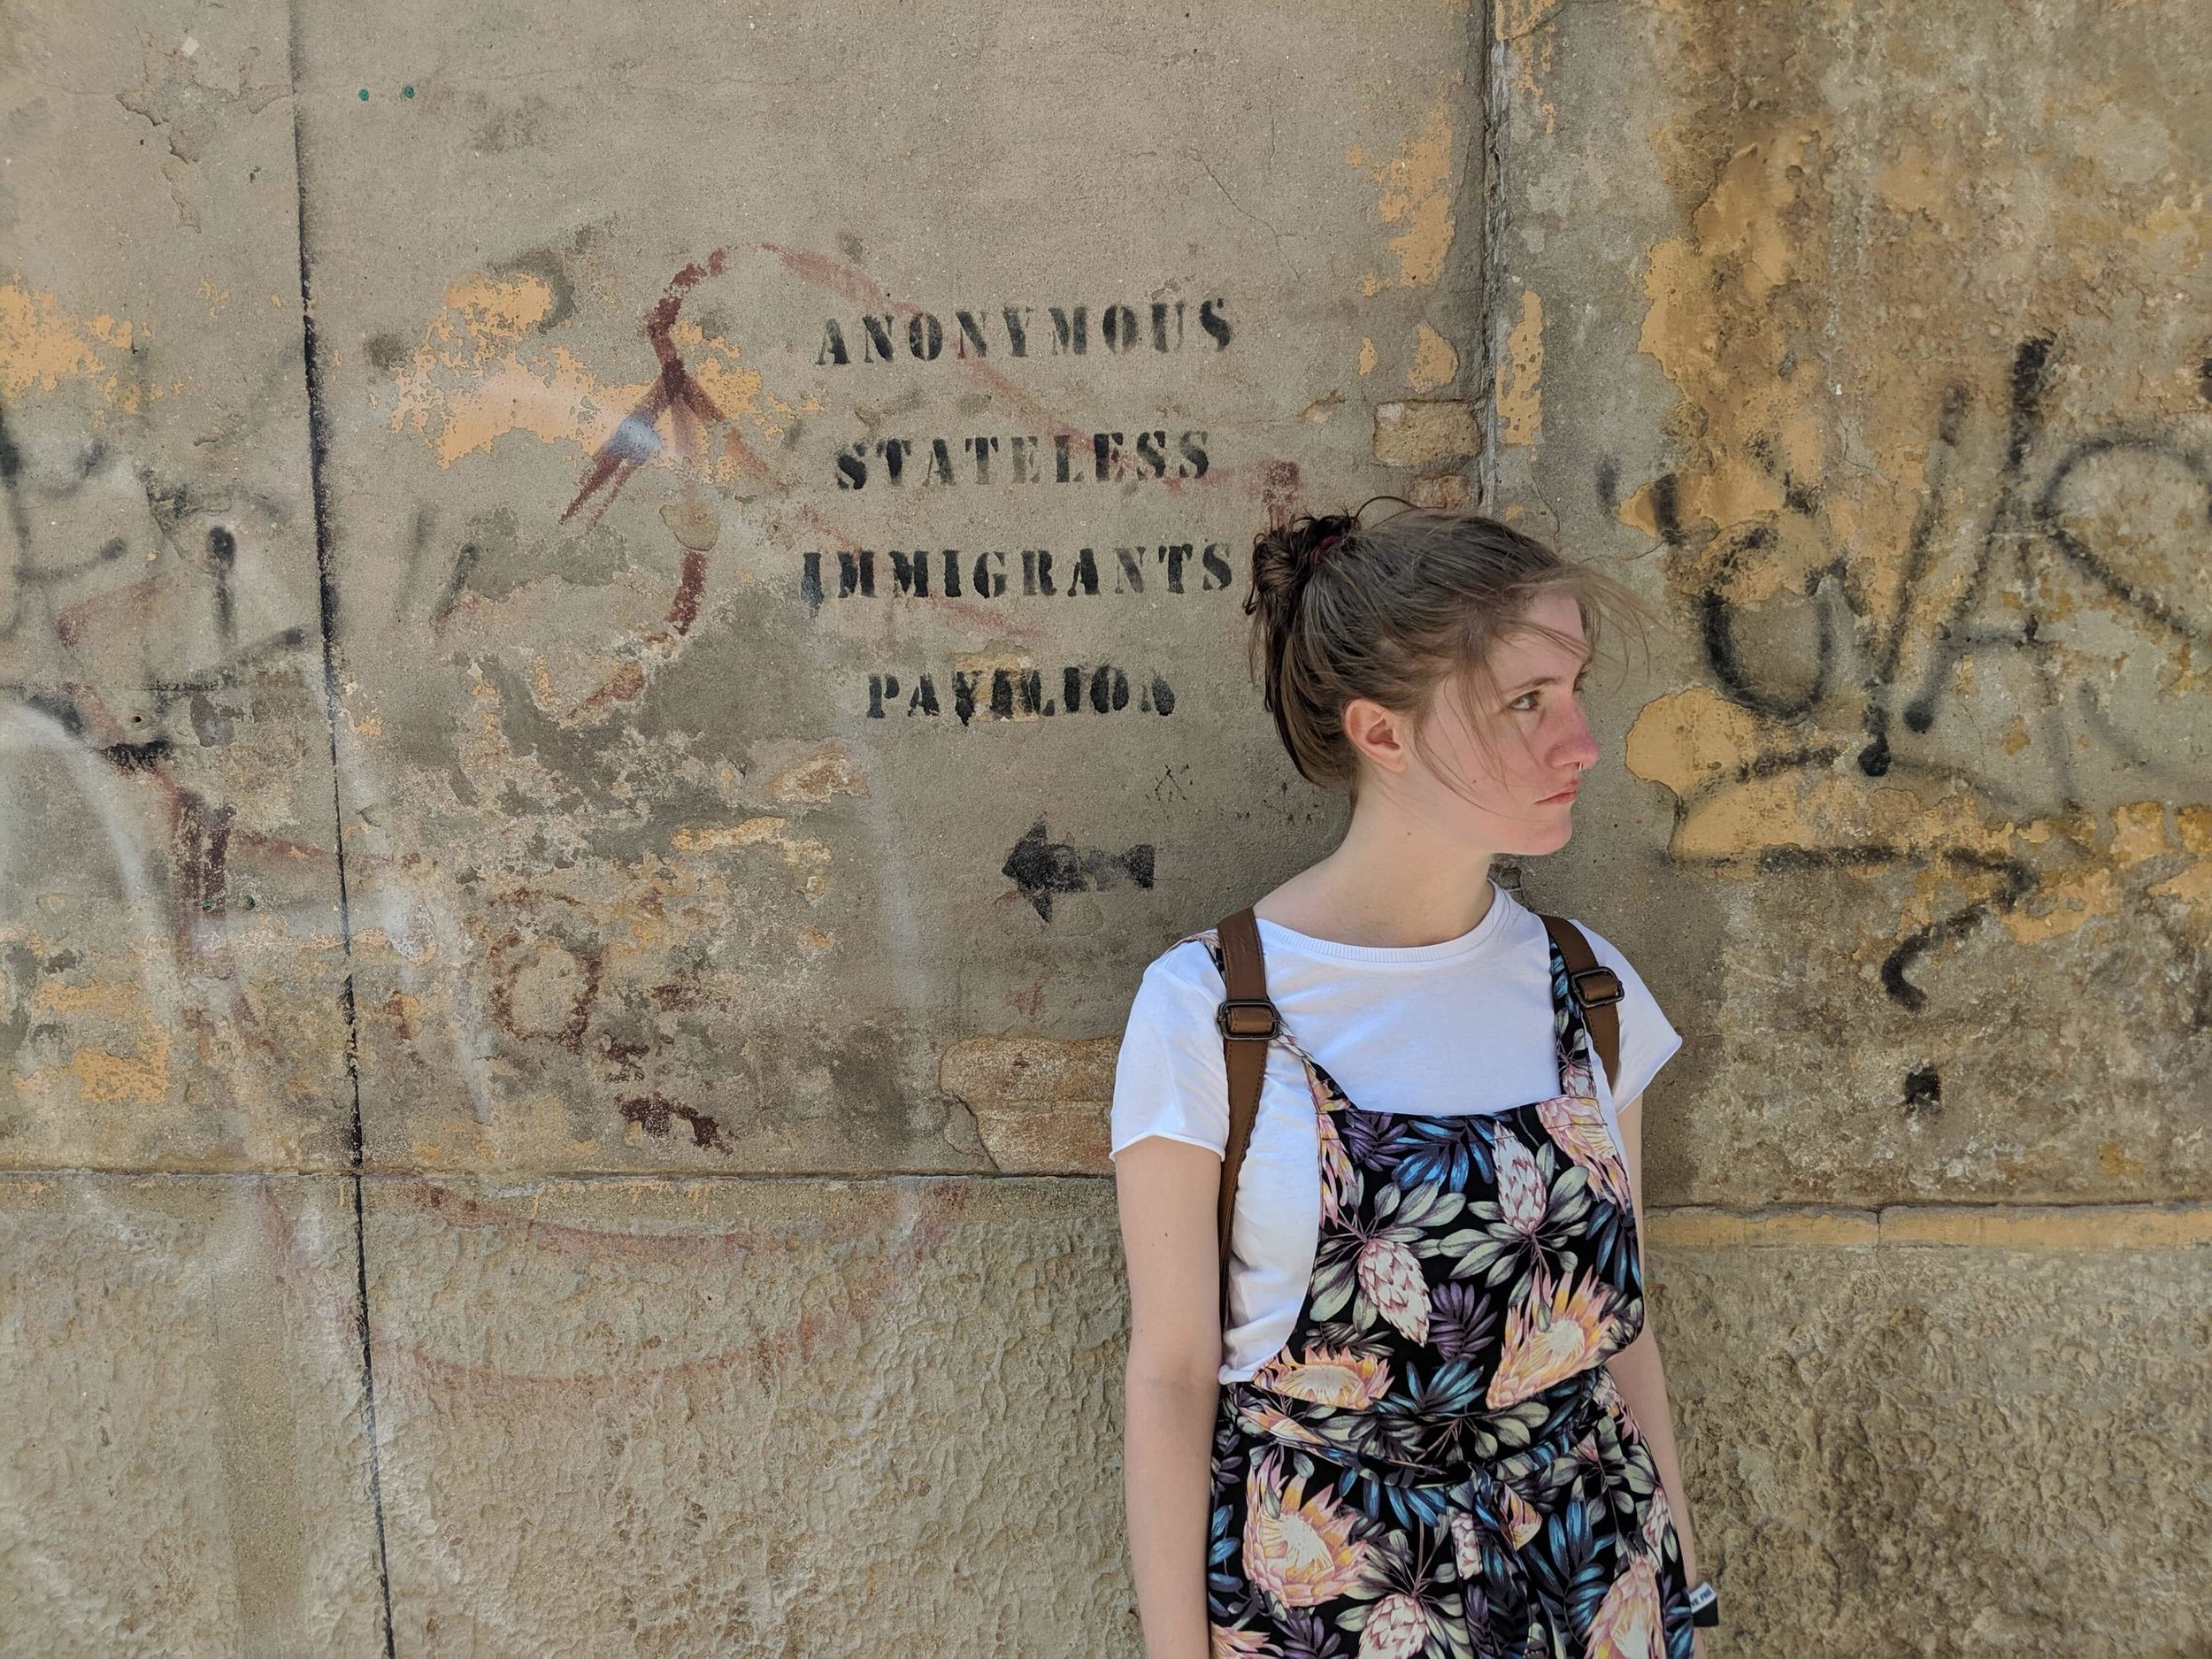 Meet field school blogger Allison, posing here with a work of protest art in the streets of Venice, revealing some of the tensions around the format and legacy of the Venice Biennale.